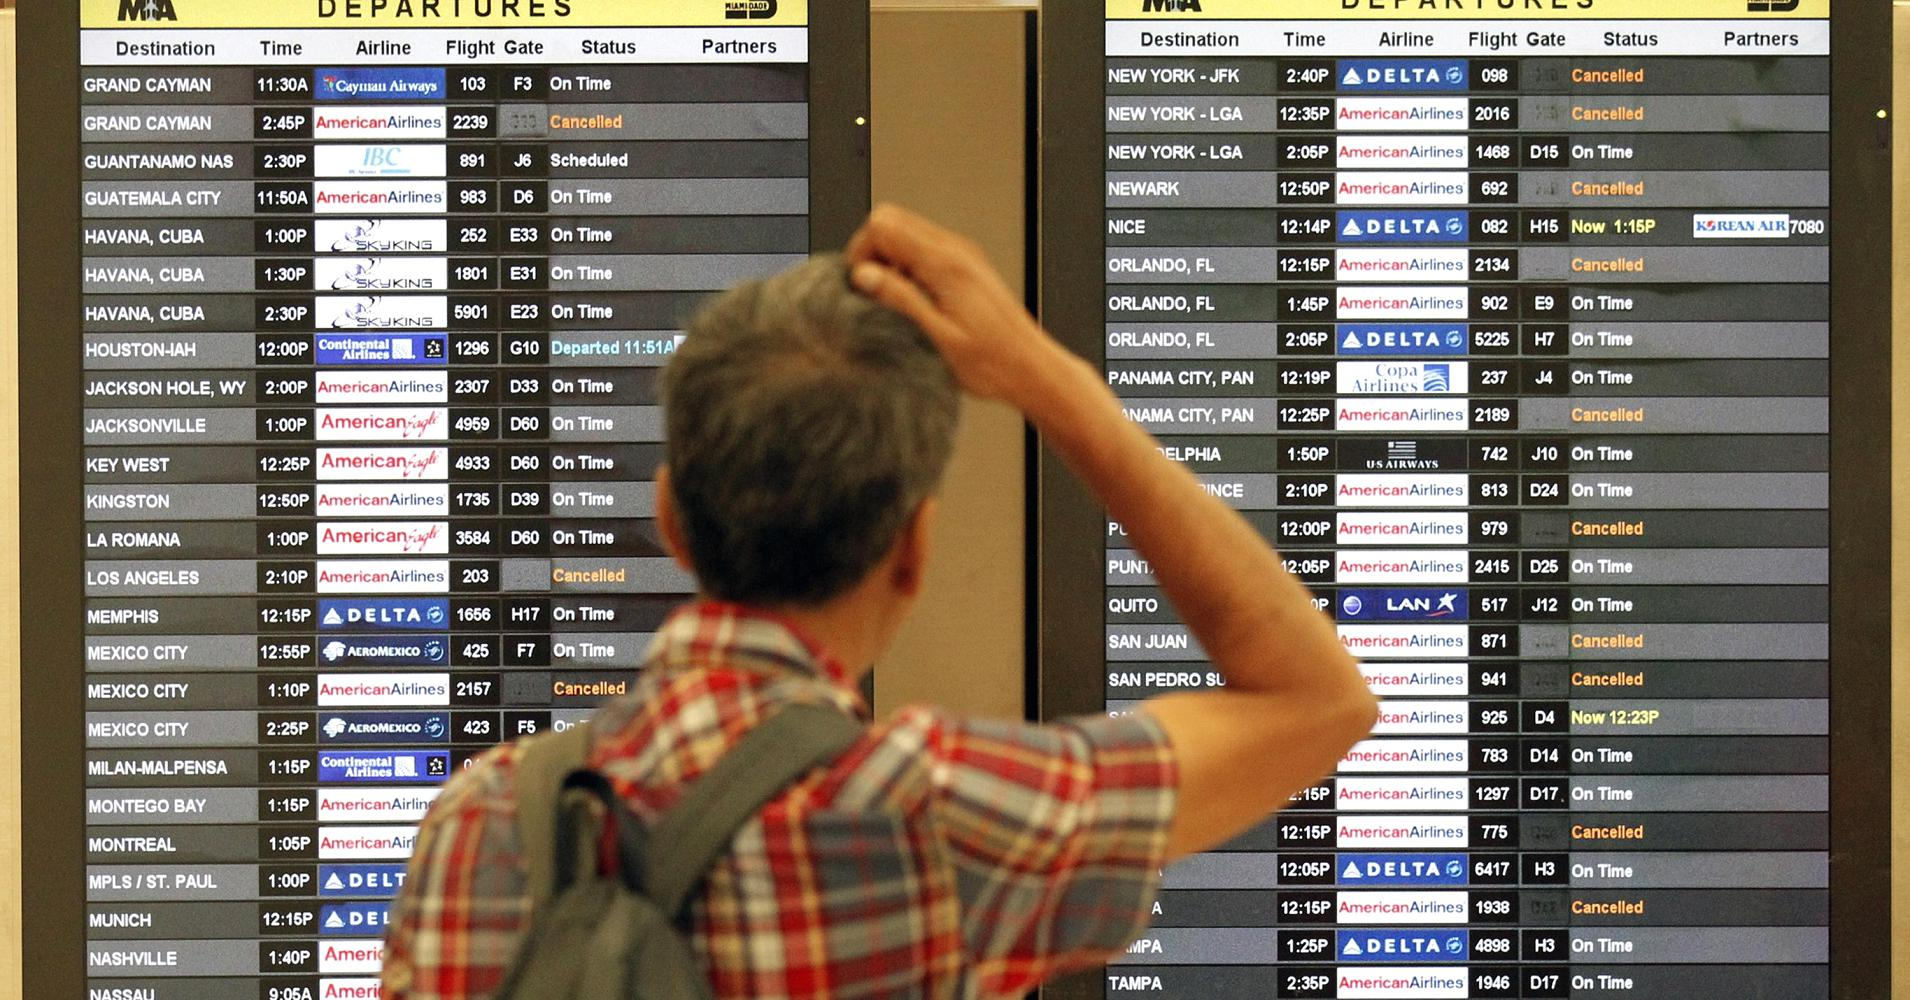 A newcomer checks a depart house as flights during Miami International Airport are canceled.